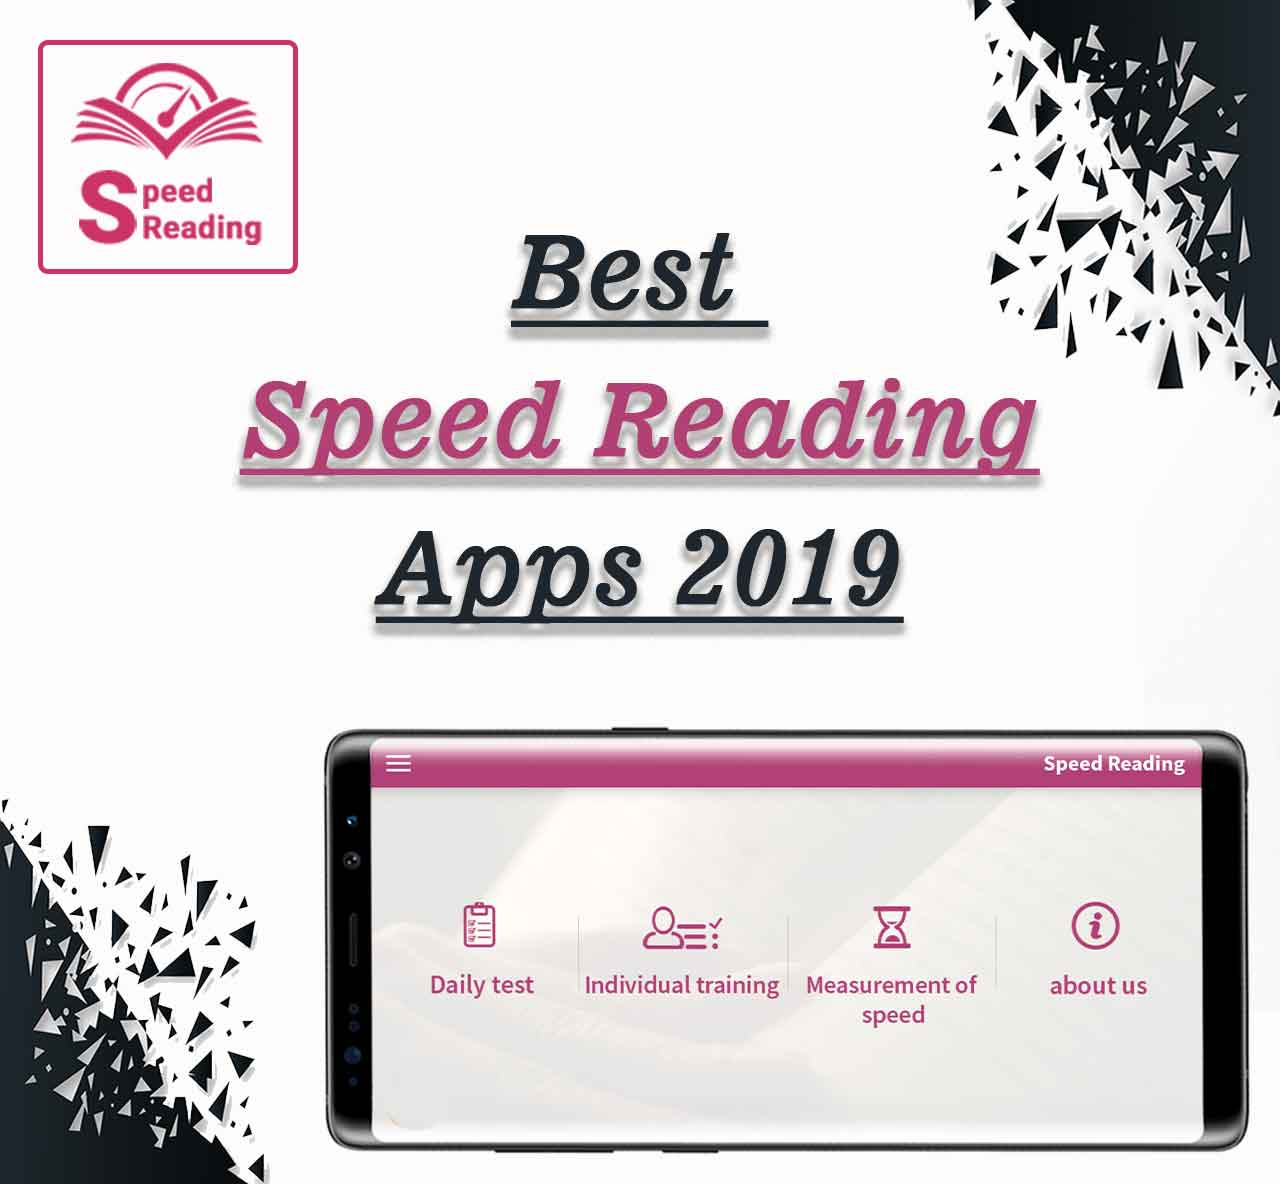 7 Best Free Speed Reading Apps for Android 2019